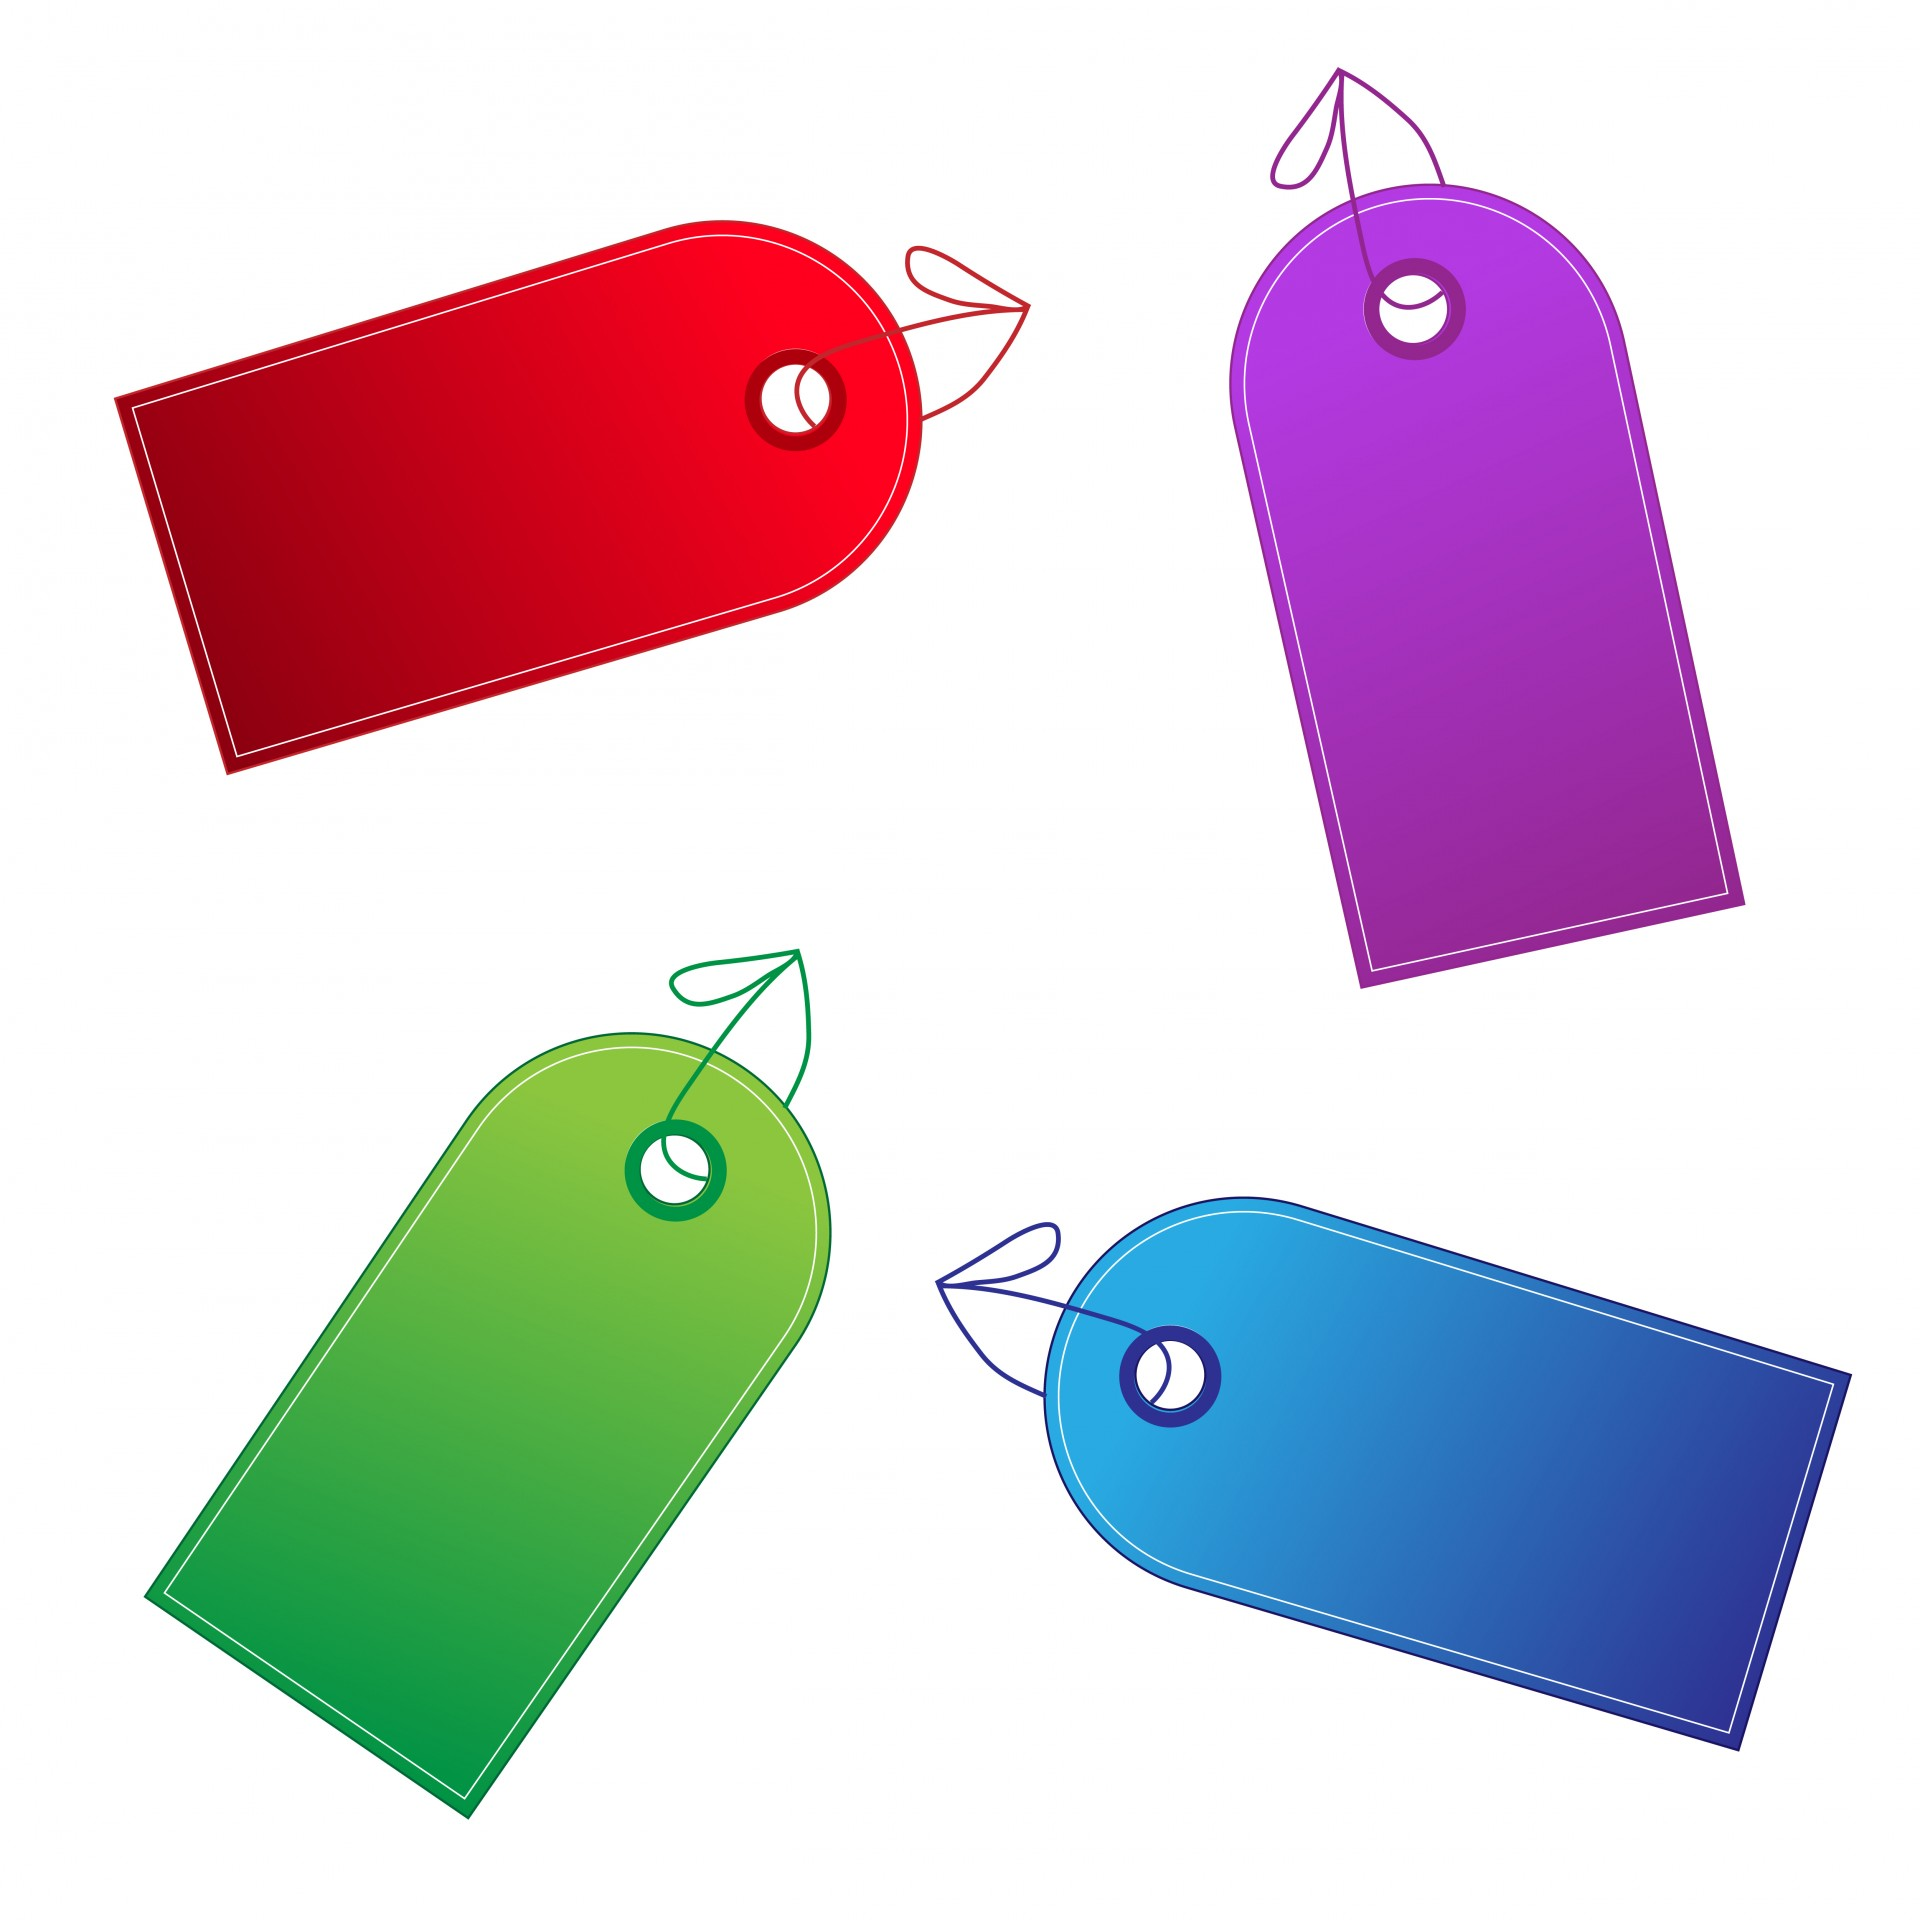 Colorful Designer Gift Tags Colorful Gif-Colorful Designer Gift Tags Colorful Gift Tags ...-11